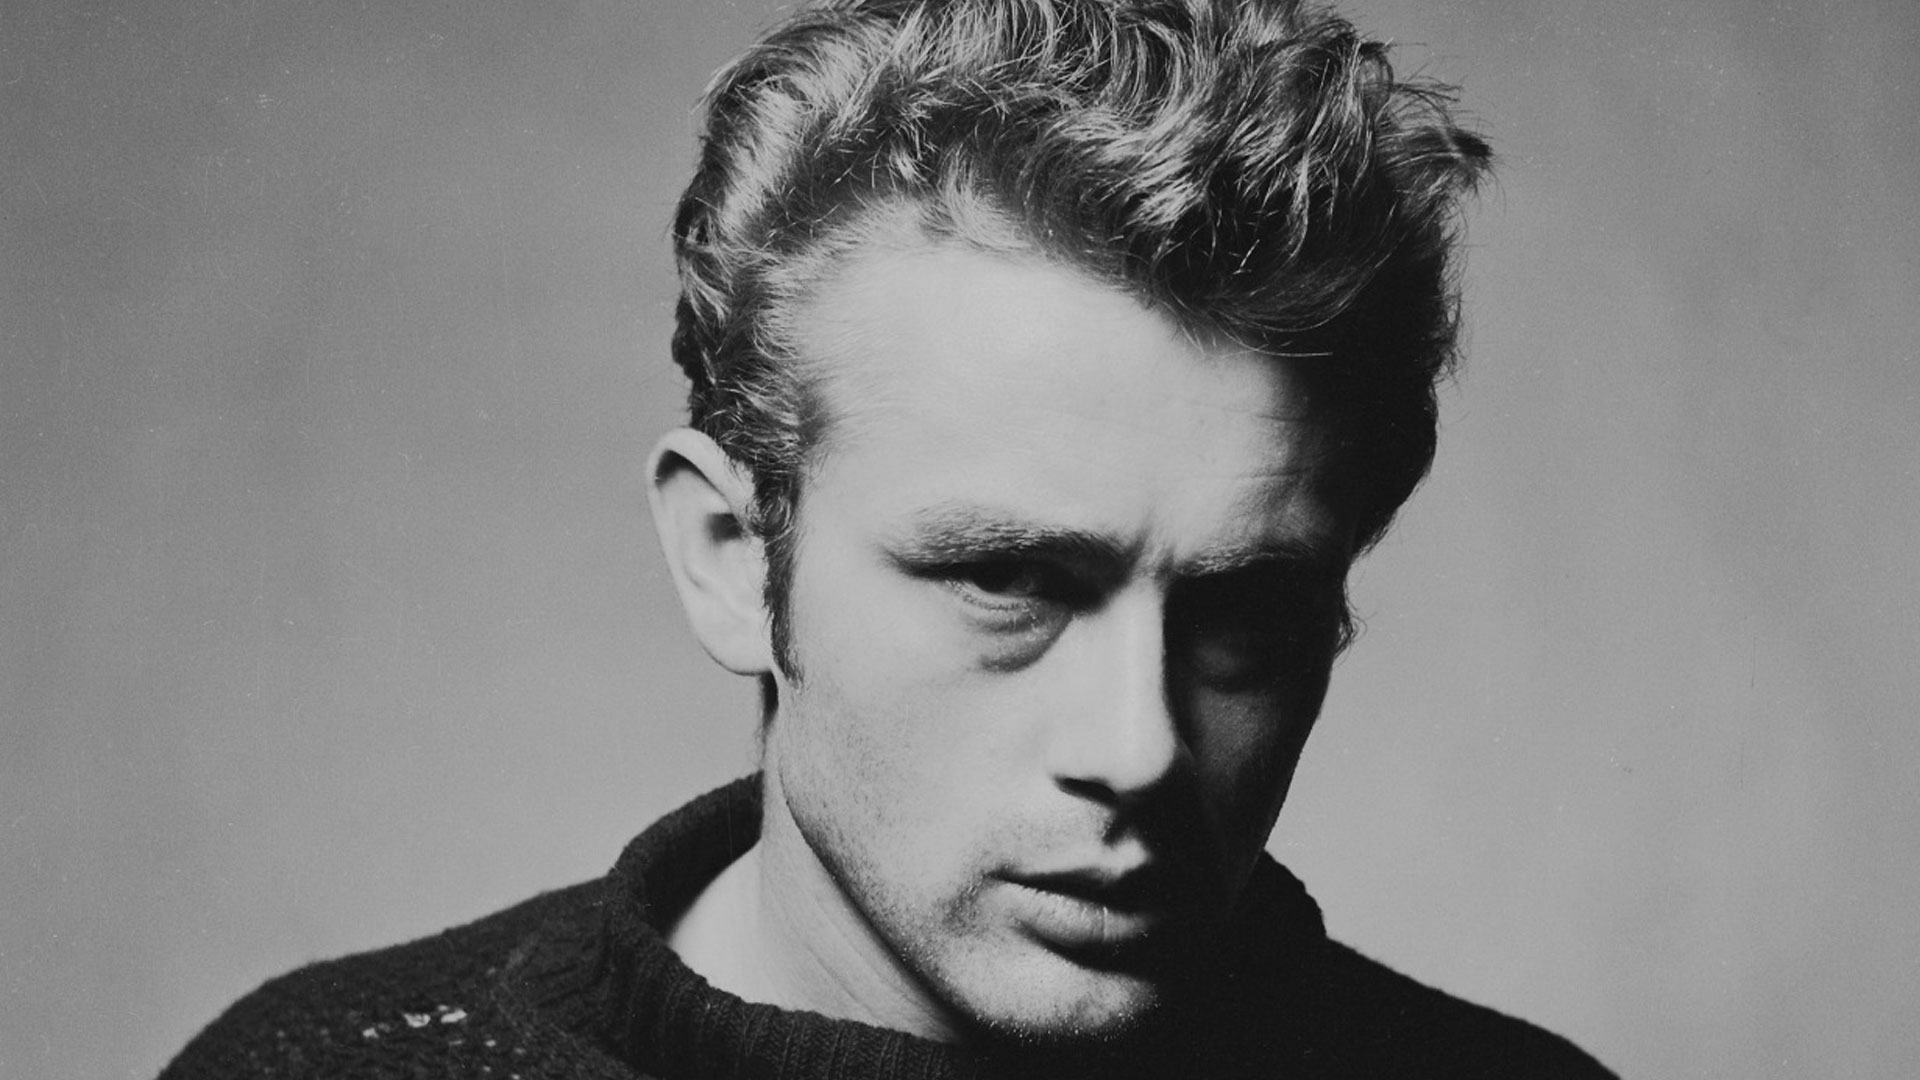 James Dean Motto